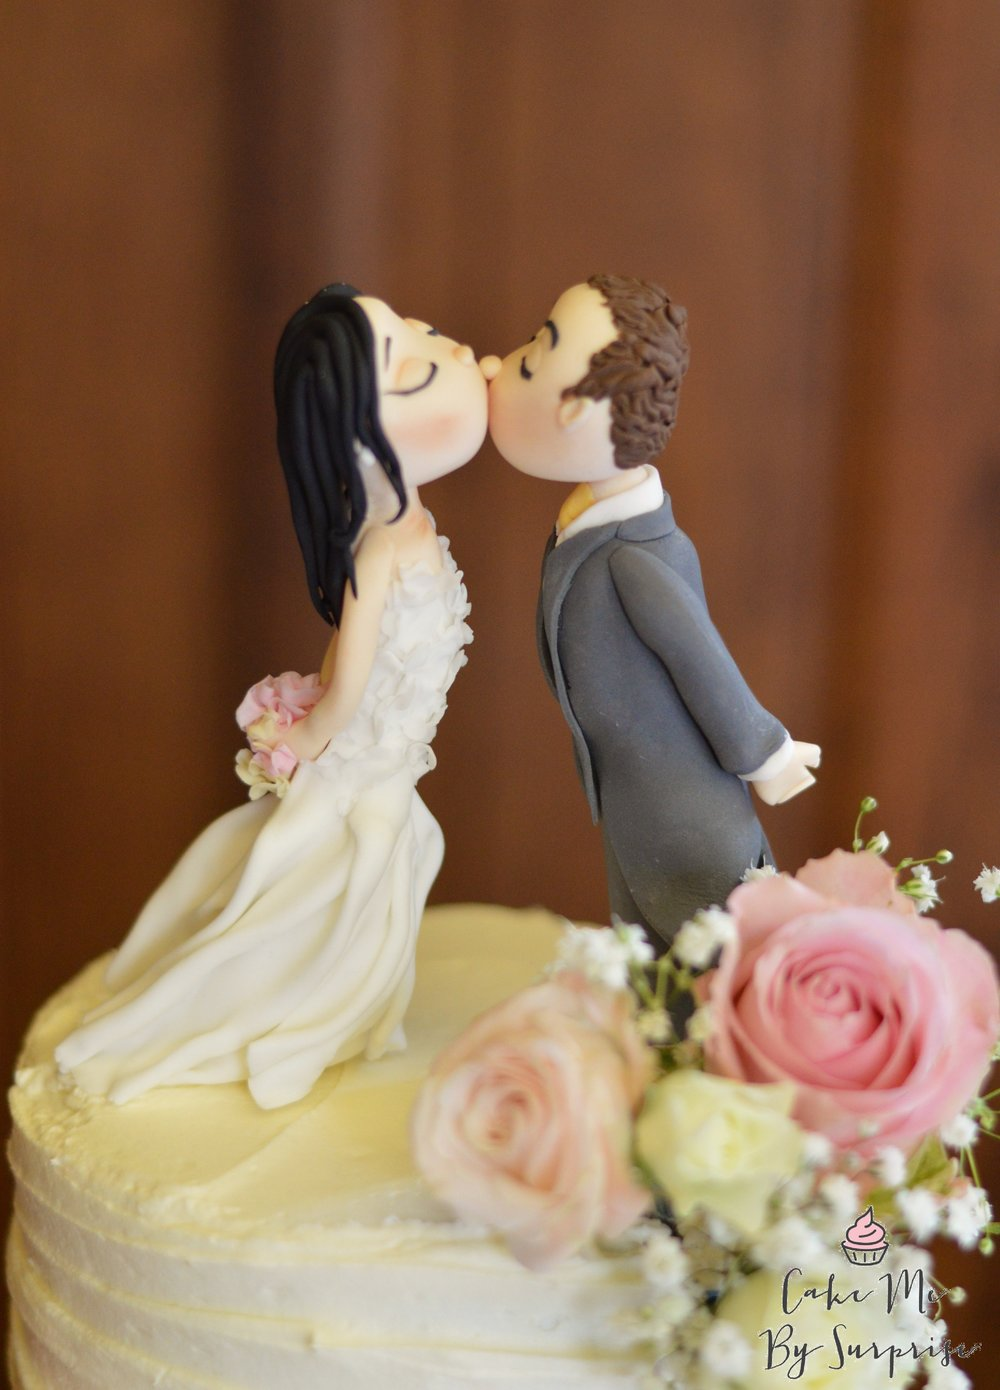 kissing anime cake toppers